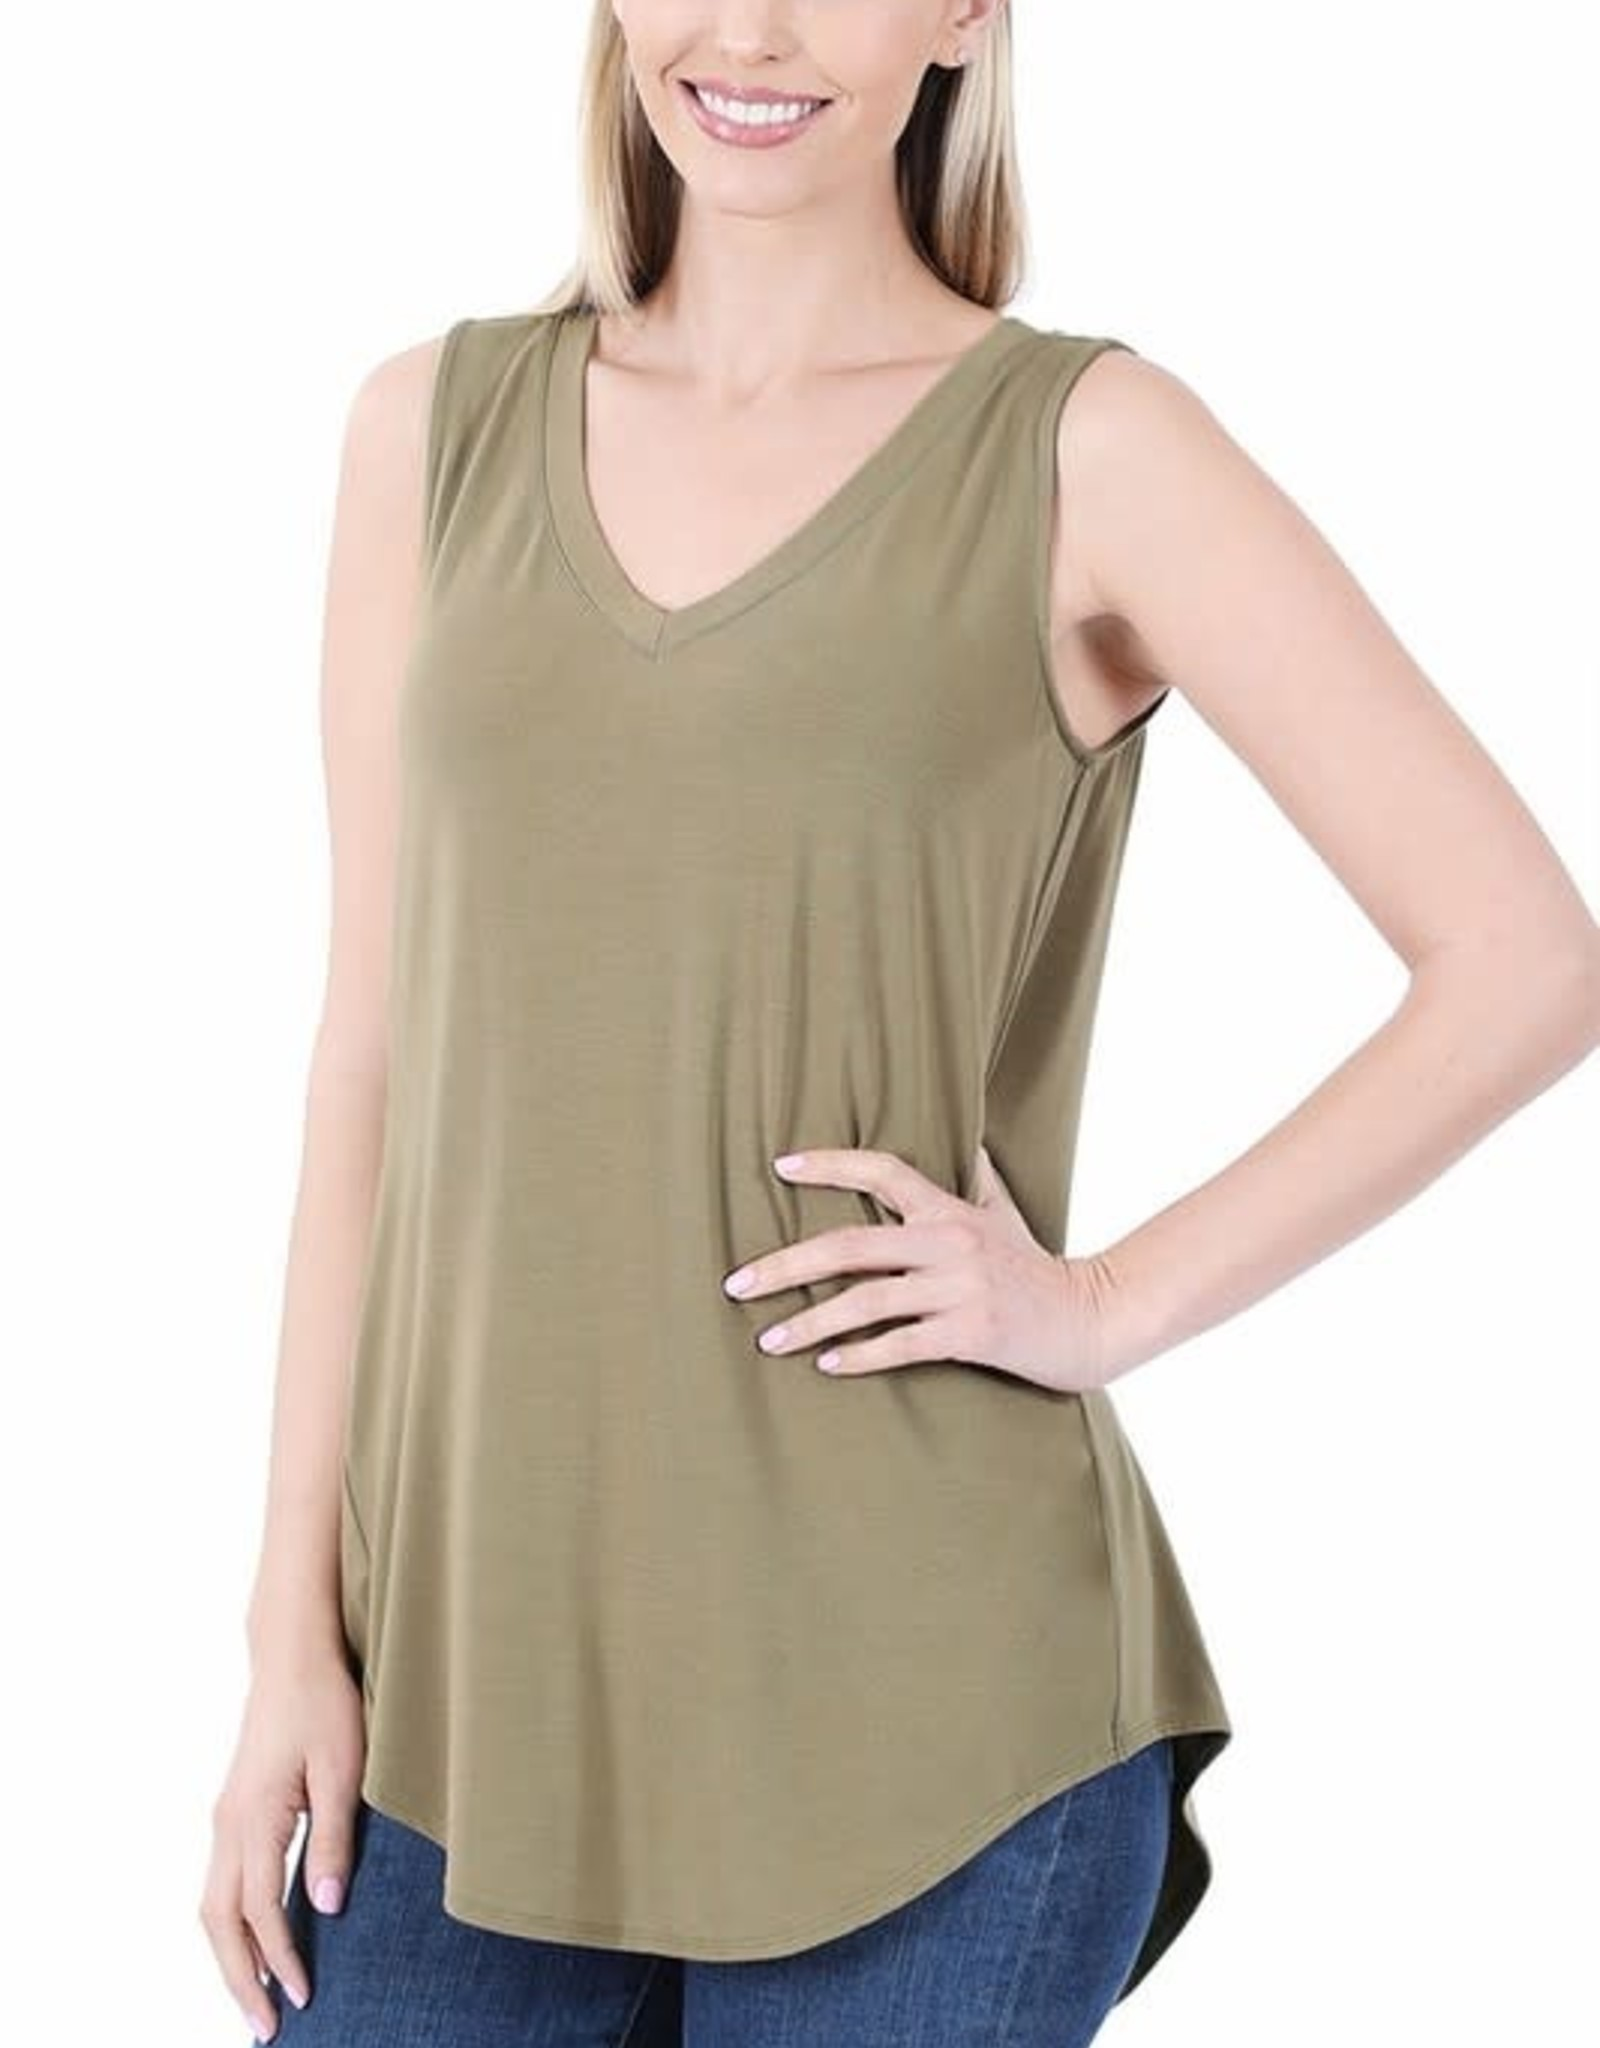 Miss Bliss Luxe Rayon Slvls V Neck-